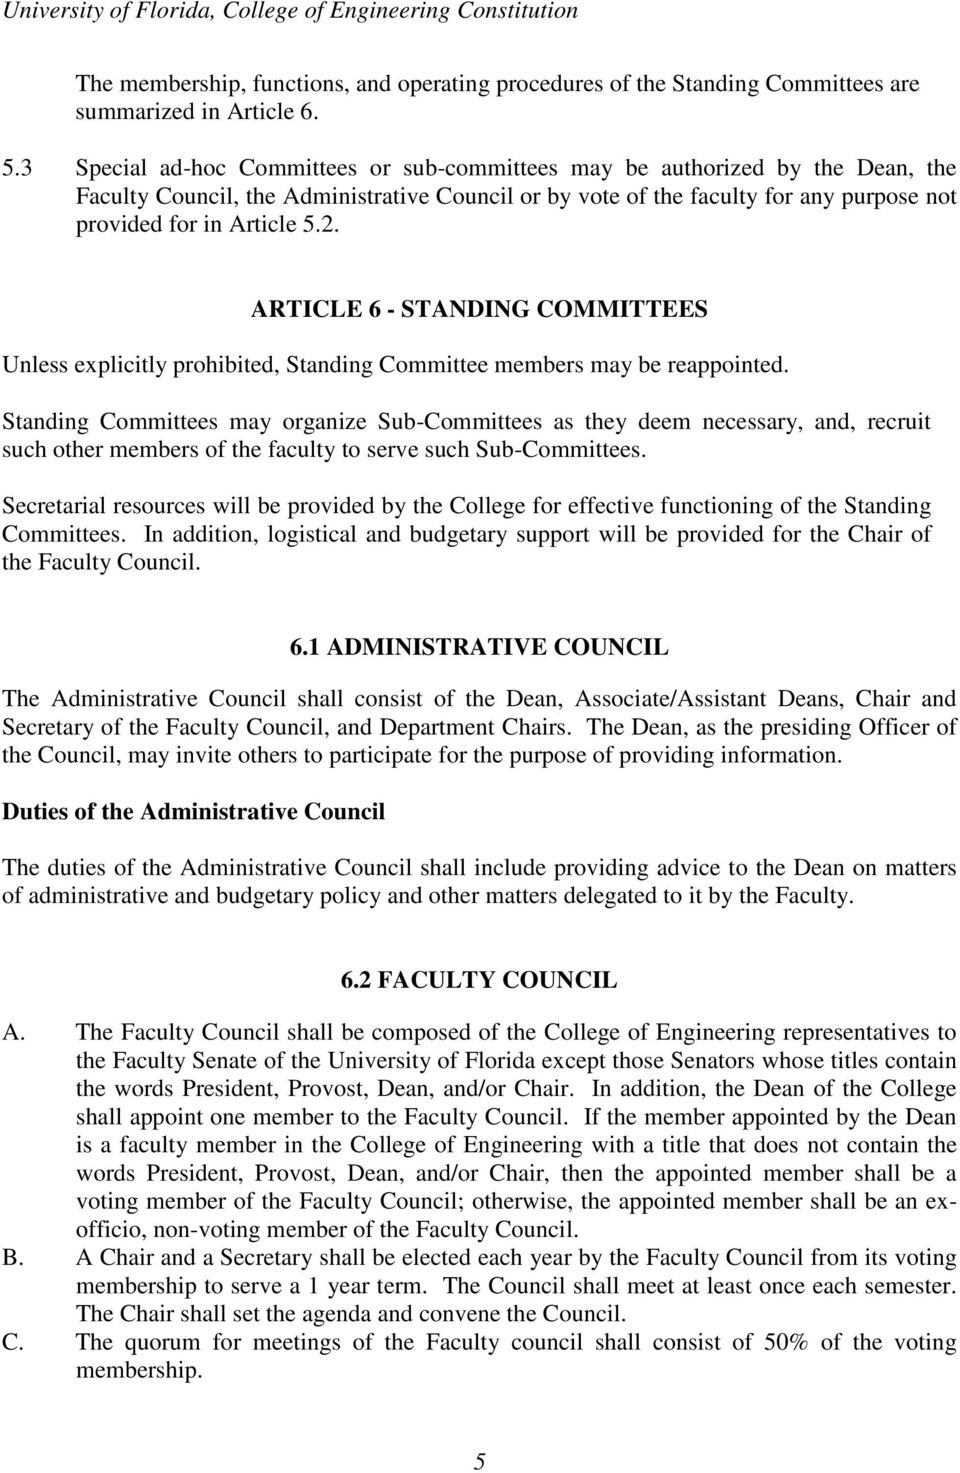 ARTICLE 6 - STANDING COMMITTEES Unless explicitly prohibited, Standing Committee members may be reappointed.